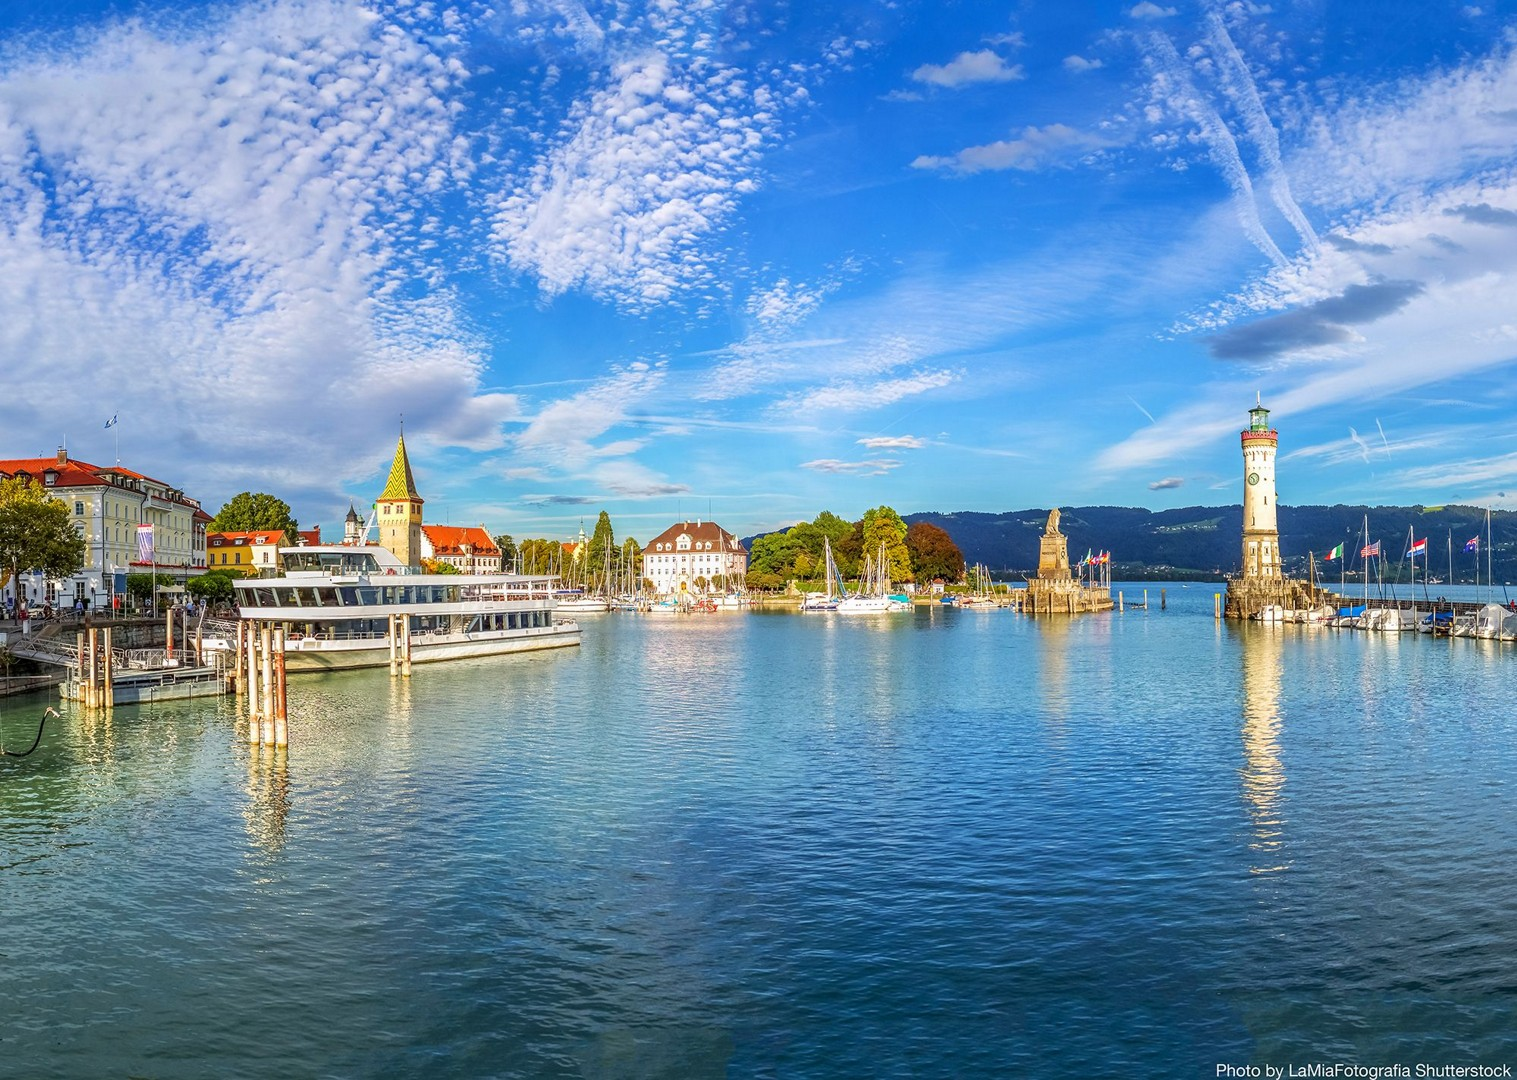 Photo LaMiaFotografia shutterstock_379688056.jpg - Germany, Austria and Switzerland - Lake Constance - Self-Guided Leisure Cycling Holiday - Leisure Cycling